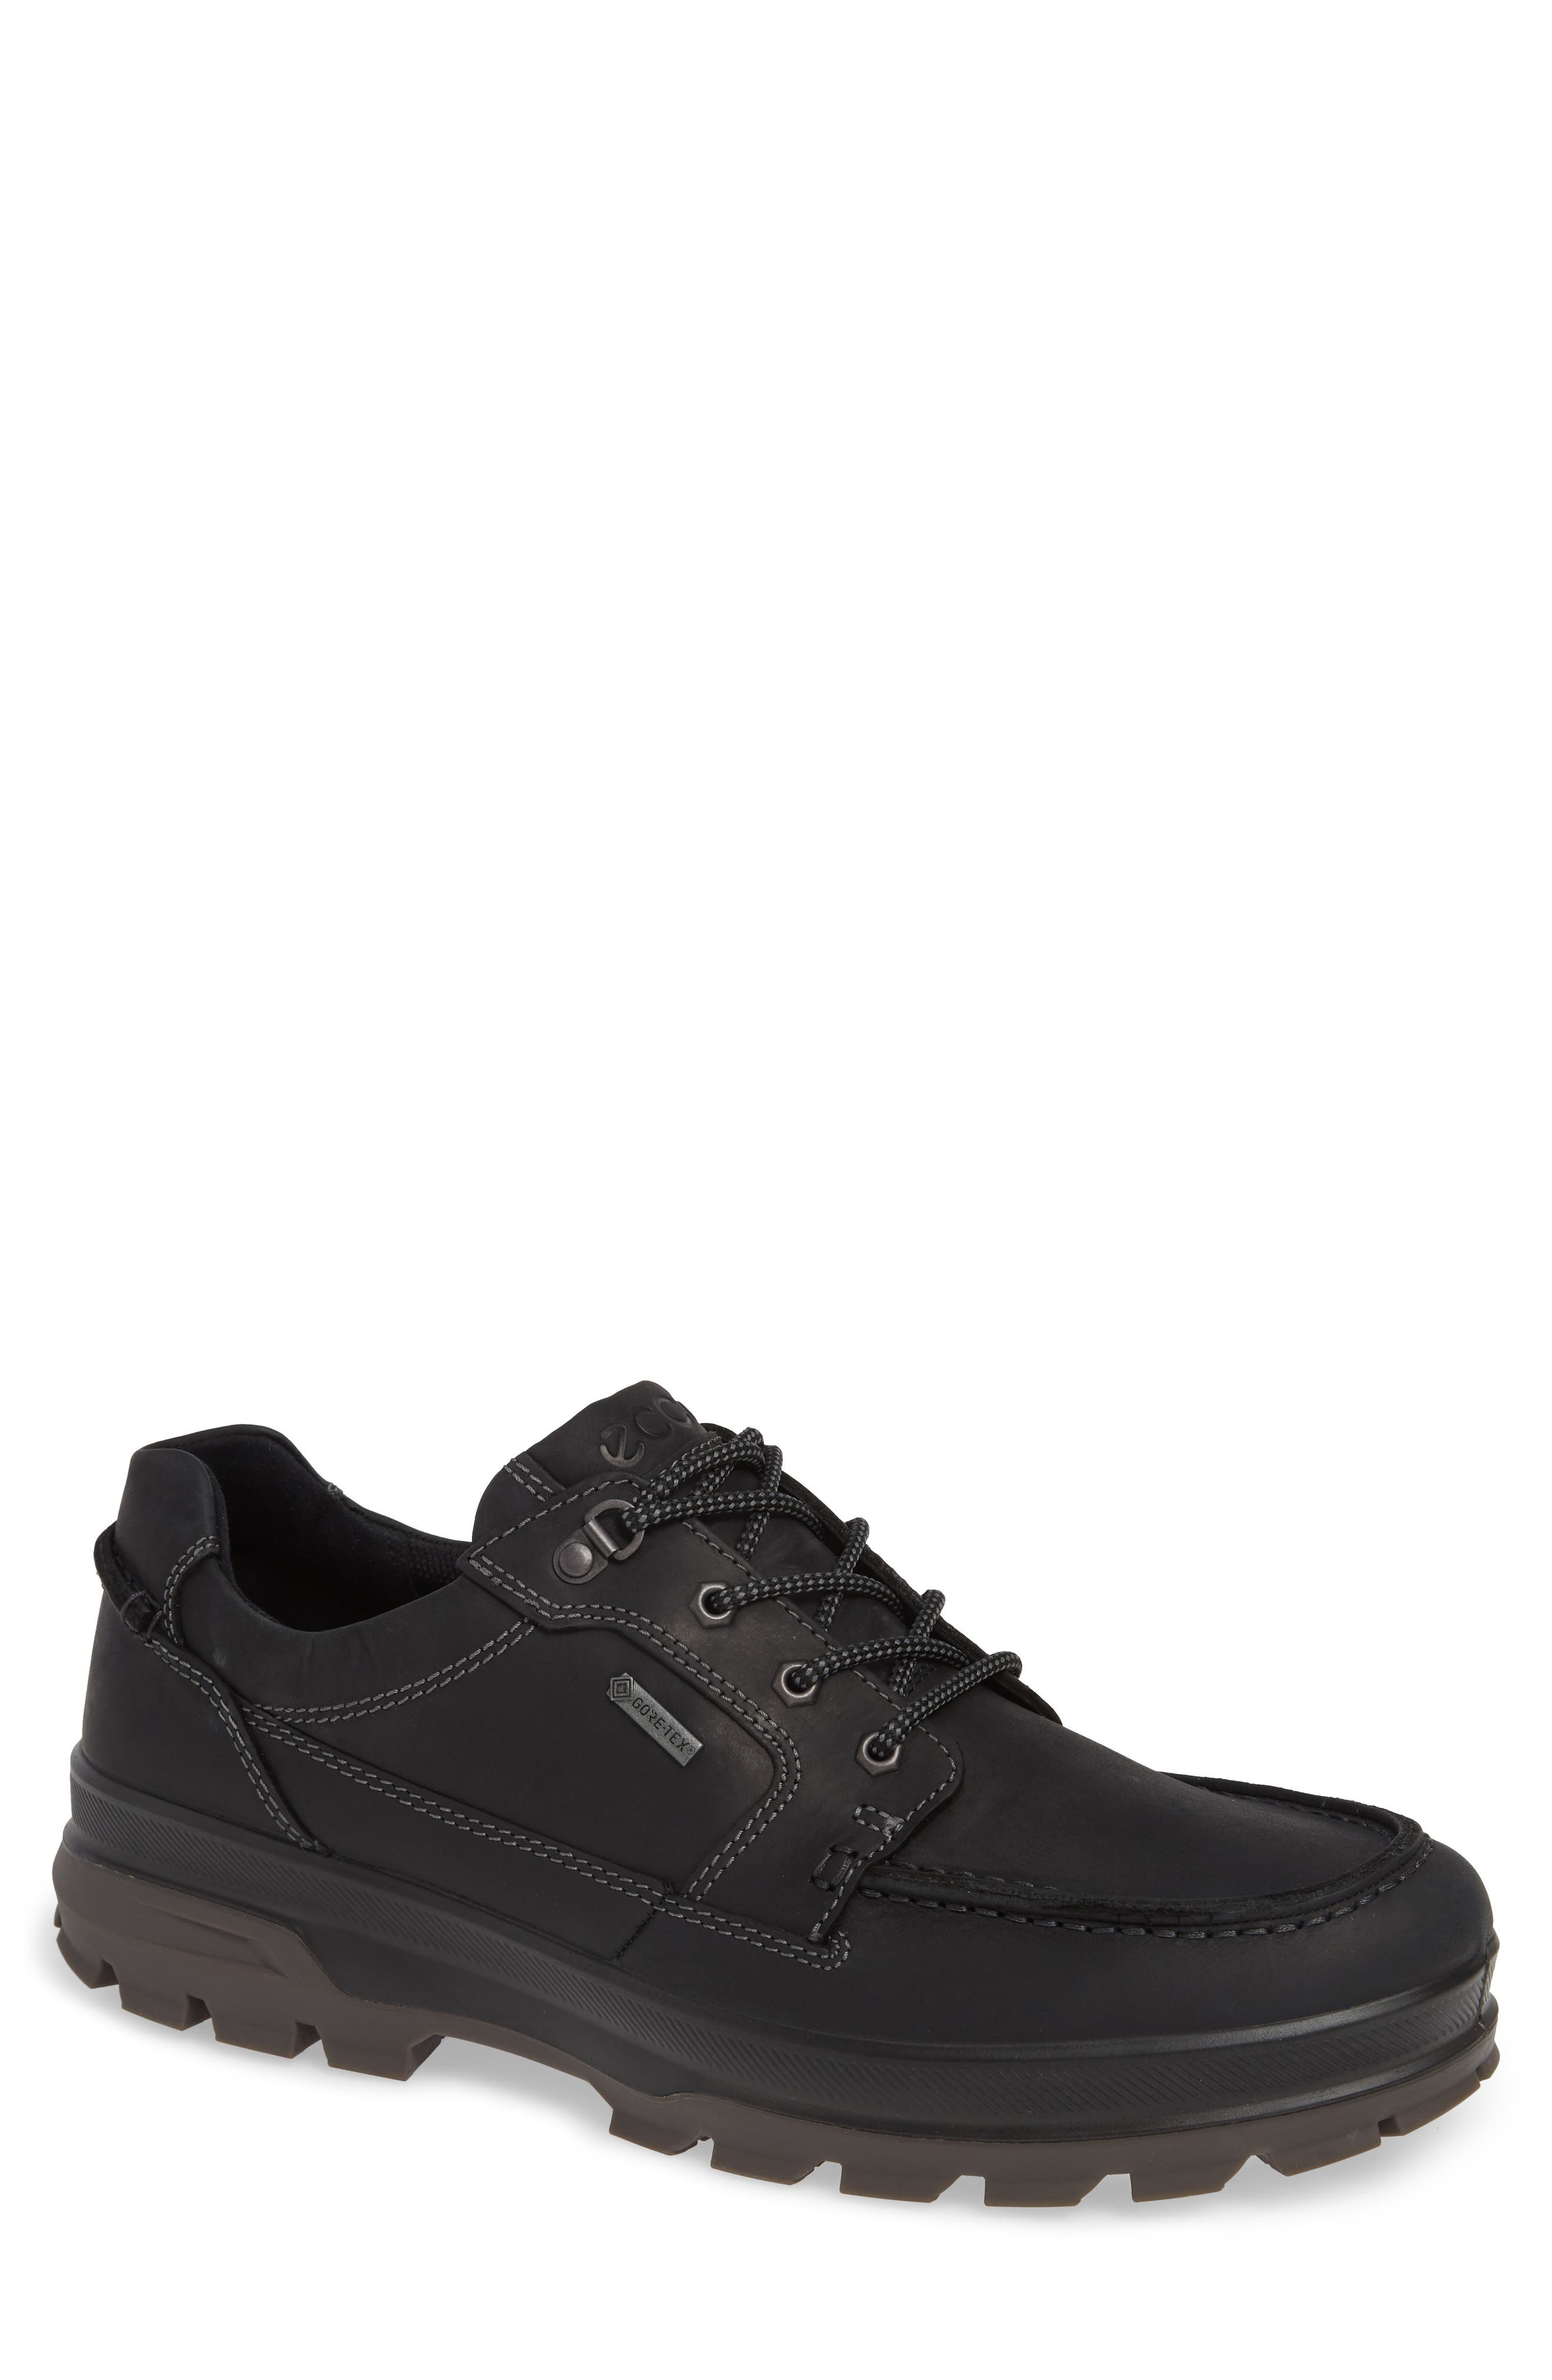 ECCO Rugged Track Low Gore-Tex<sup>®</sup> Oxford, Main, color, 003